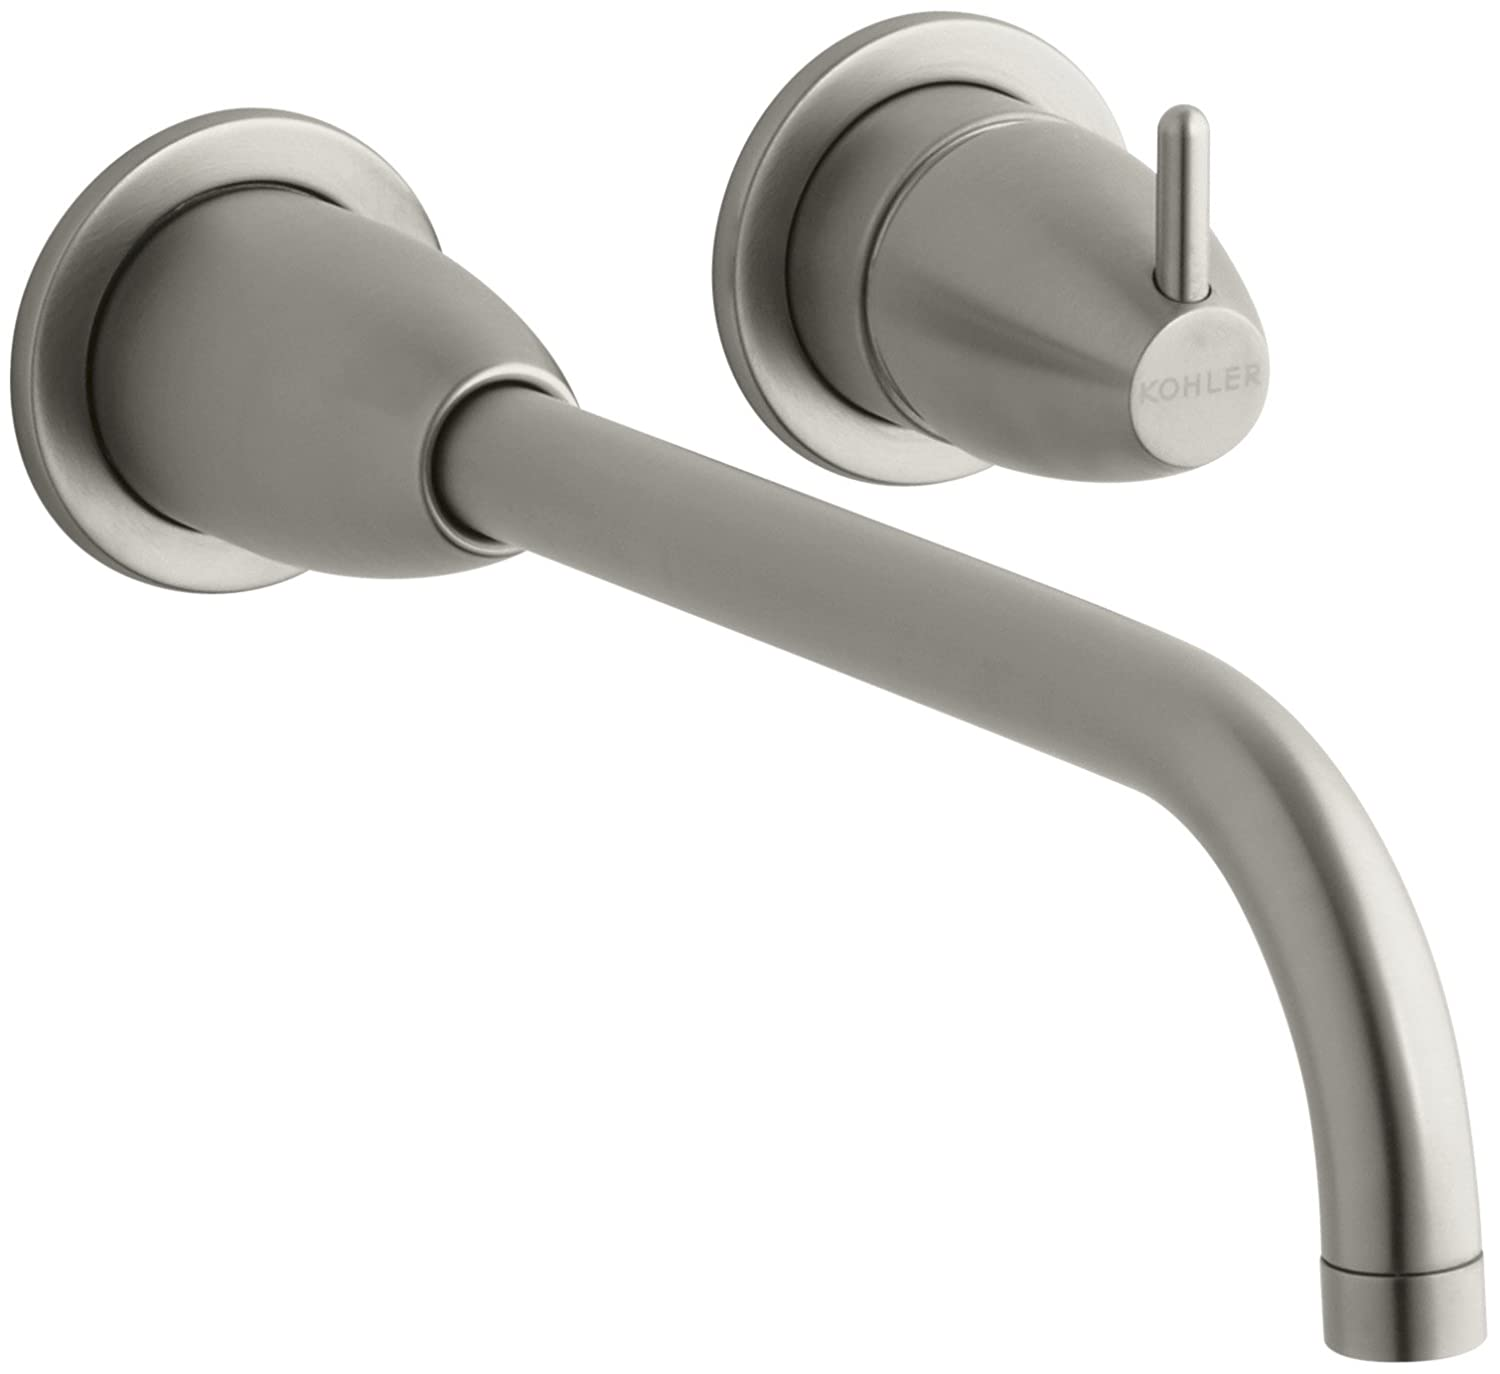 lever single faucet brushed bathroom handle wall faucets with mount nickel nisartmacka com